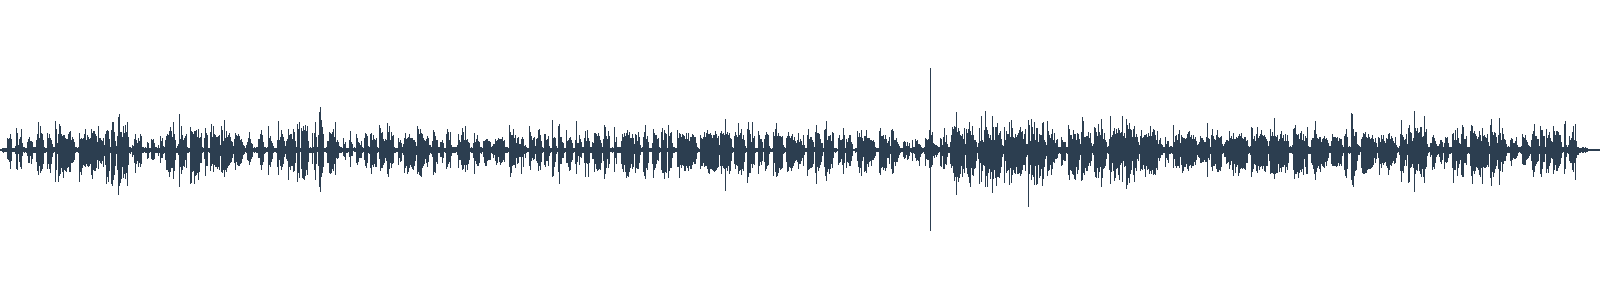 Vlak o 6.41 waveform